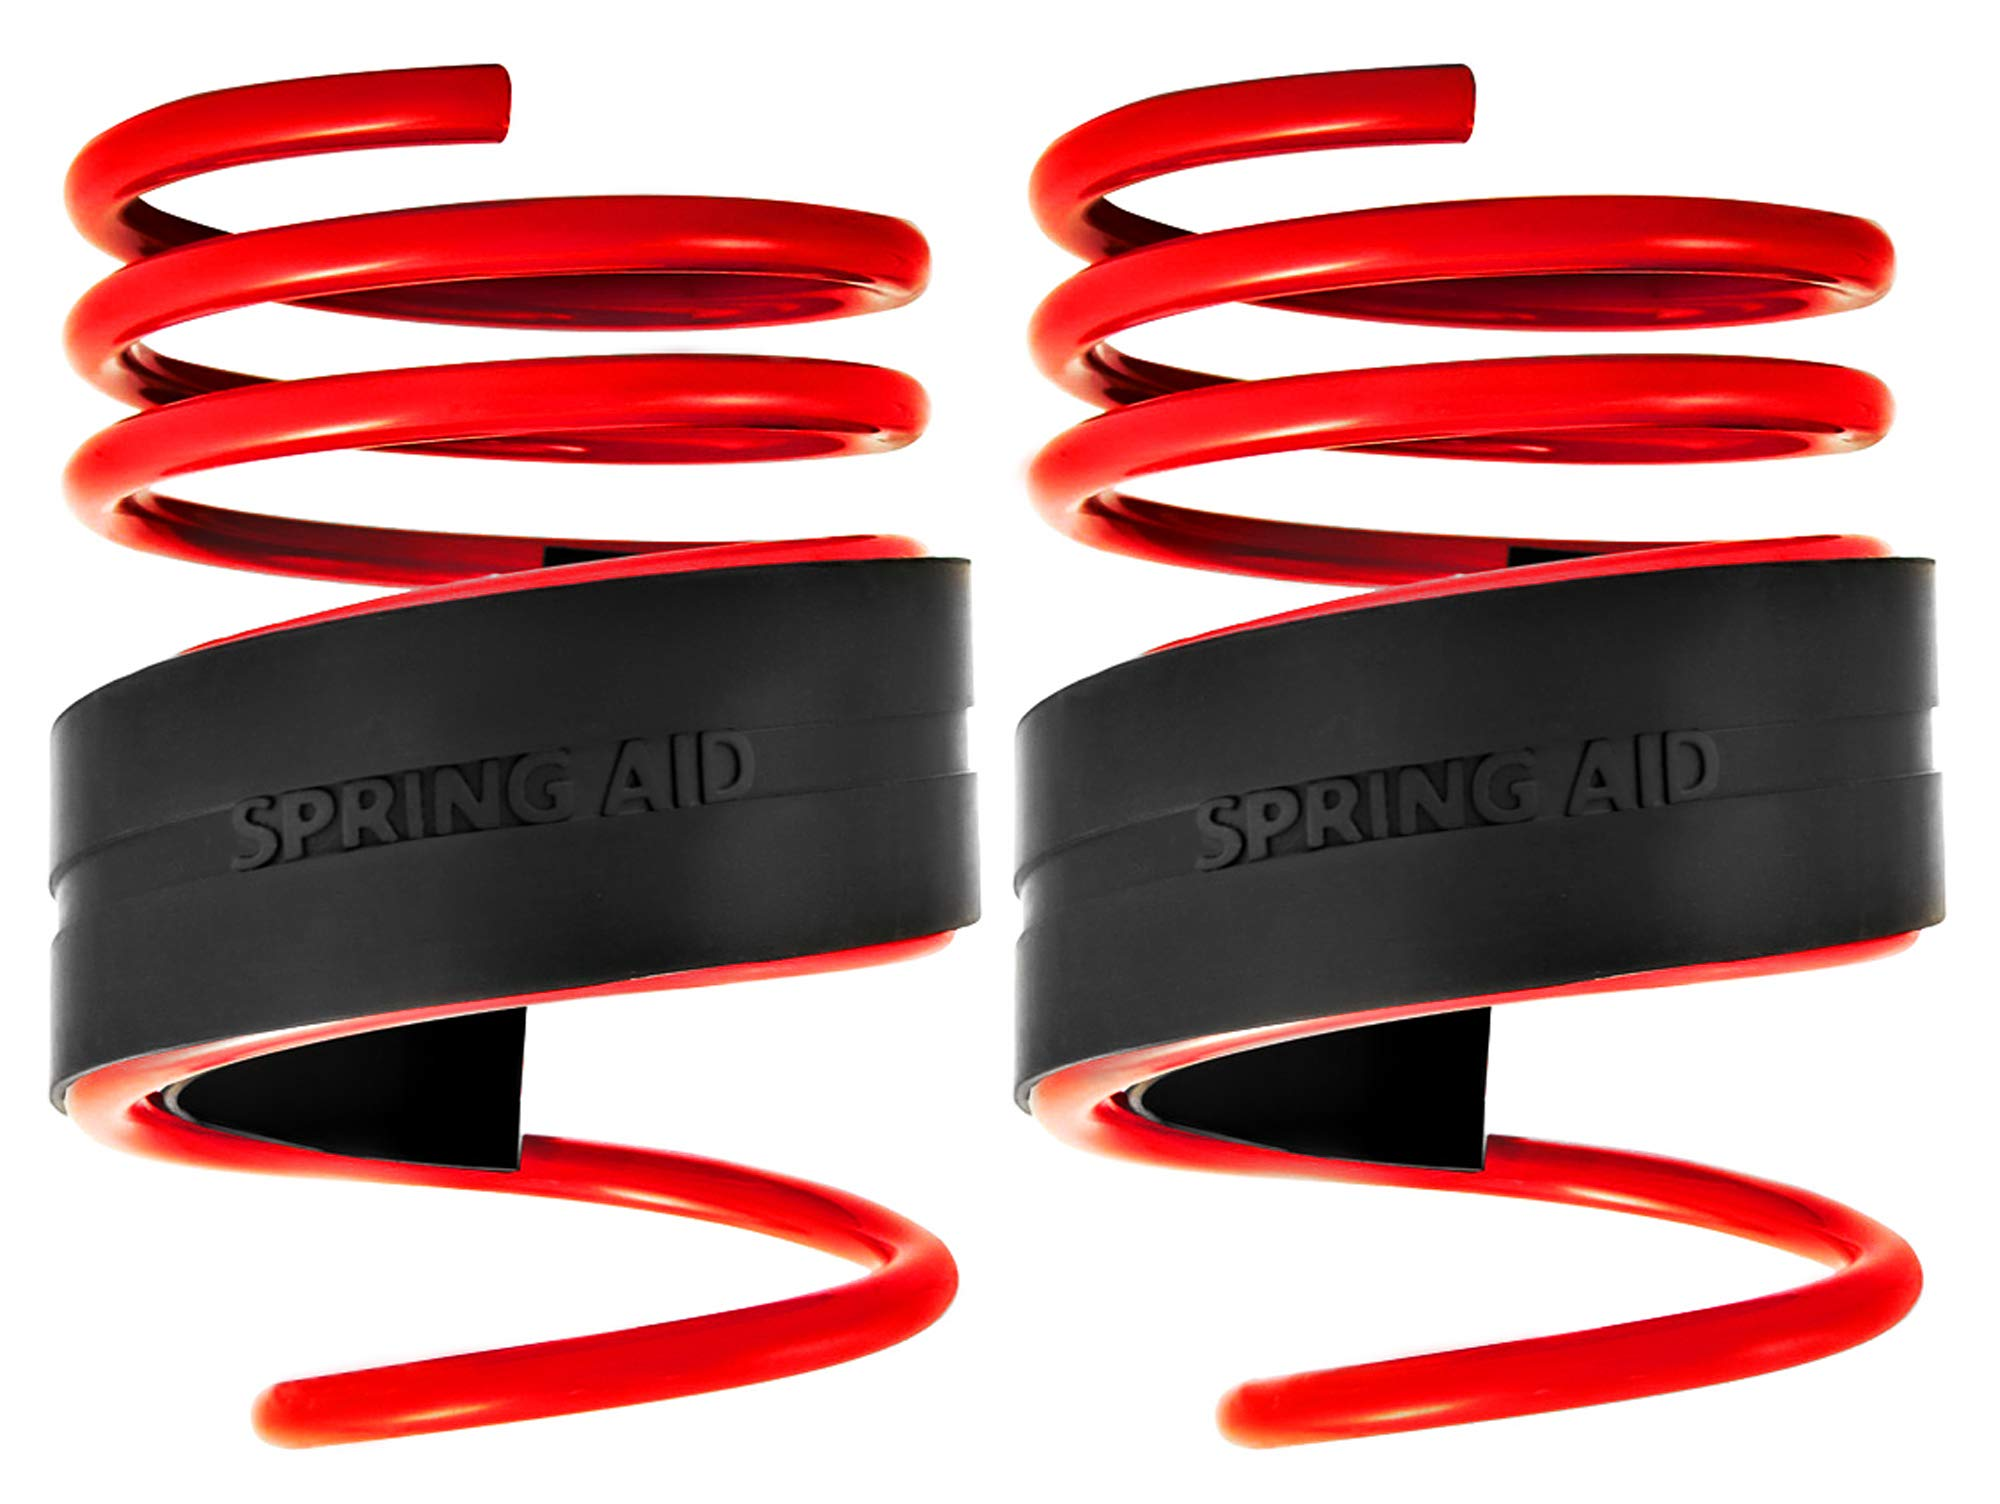 39-51mm Gap Coil Spring Assister Supports Suspension Towing Caravan Heavy Loads